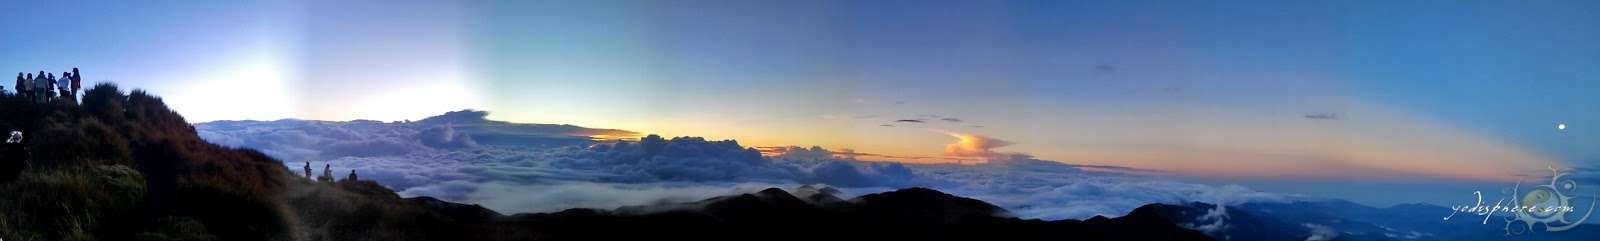 Panoramic view of the sunrise at the Peak of Mt. Pulag